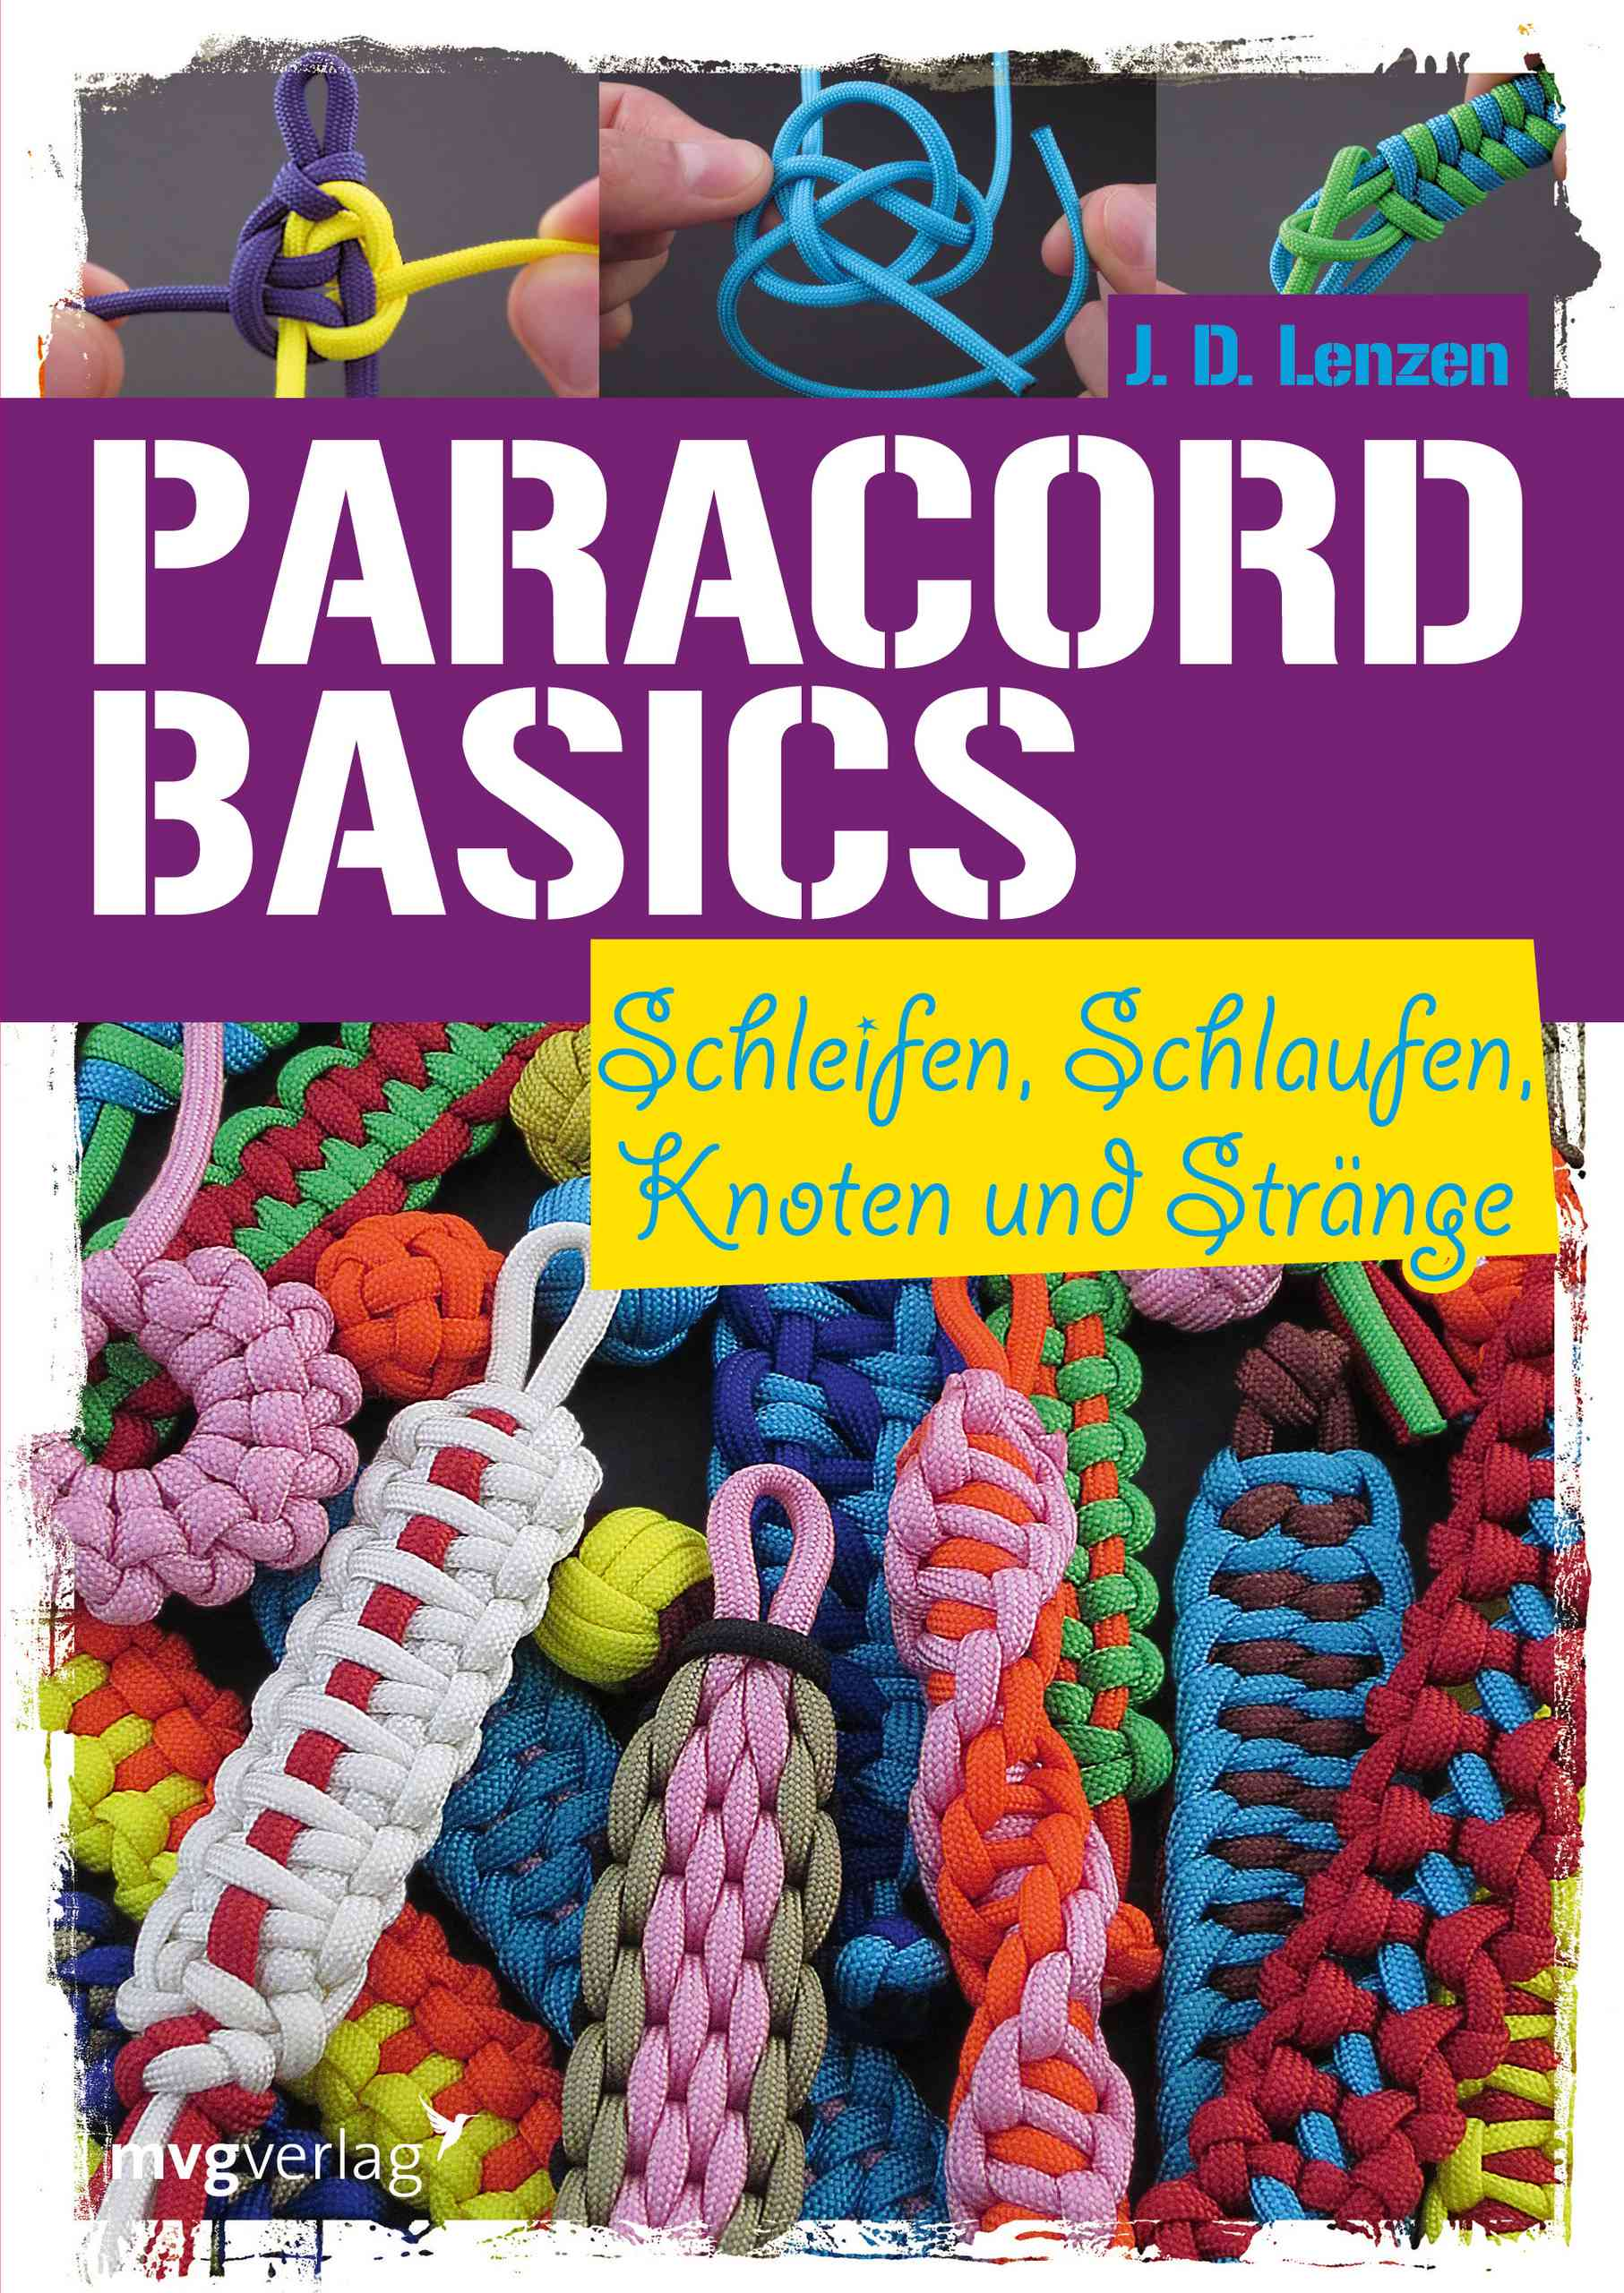 JD_Lenzen Paracord Basics Blog